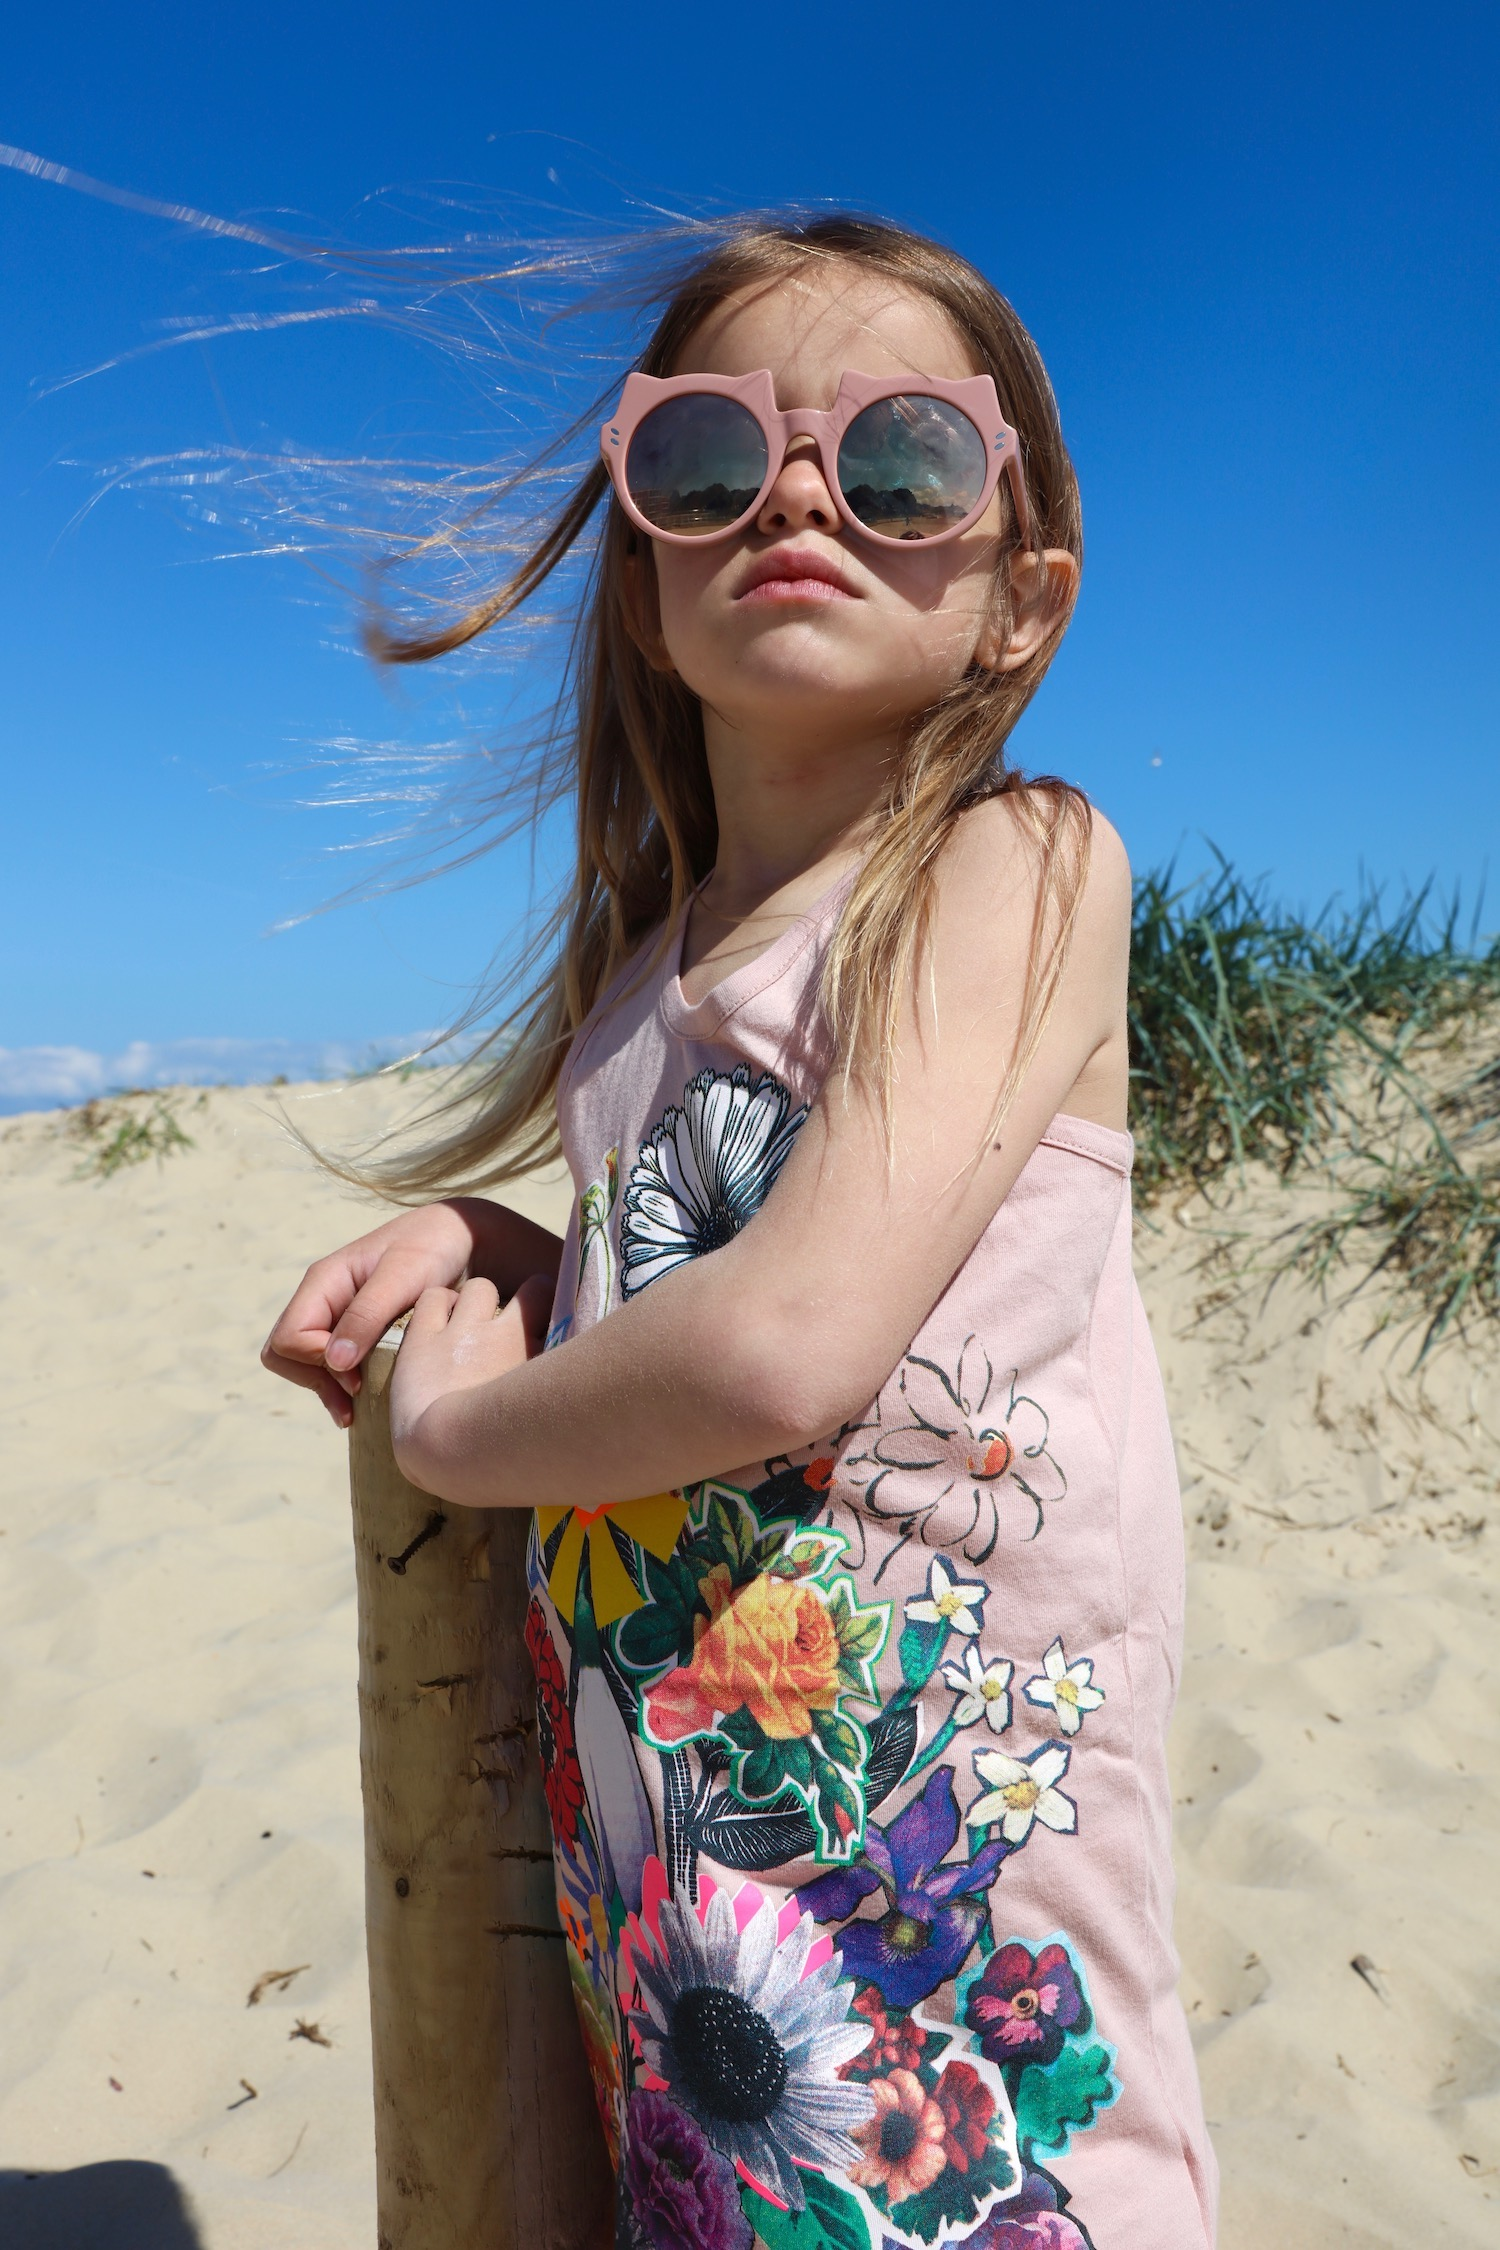 CHildrensalon_stella_mccartney_kids_cat_sunglasses_dress